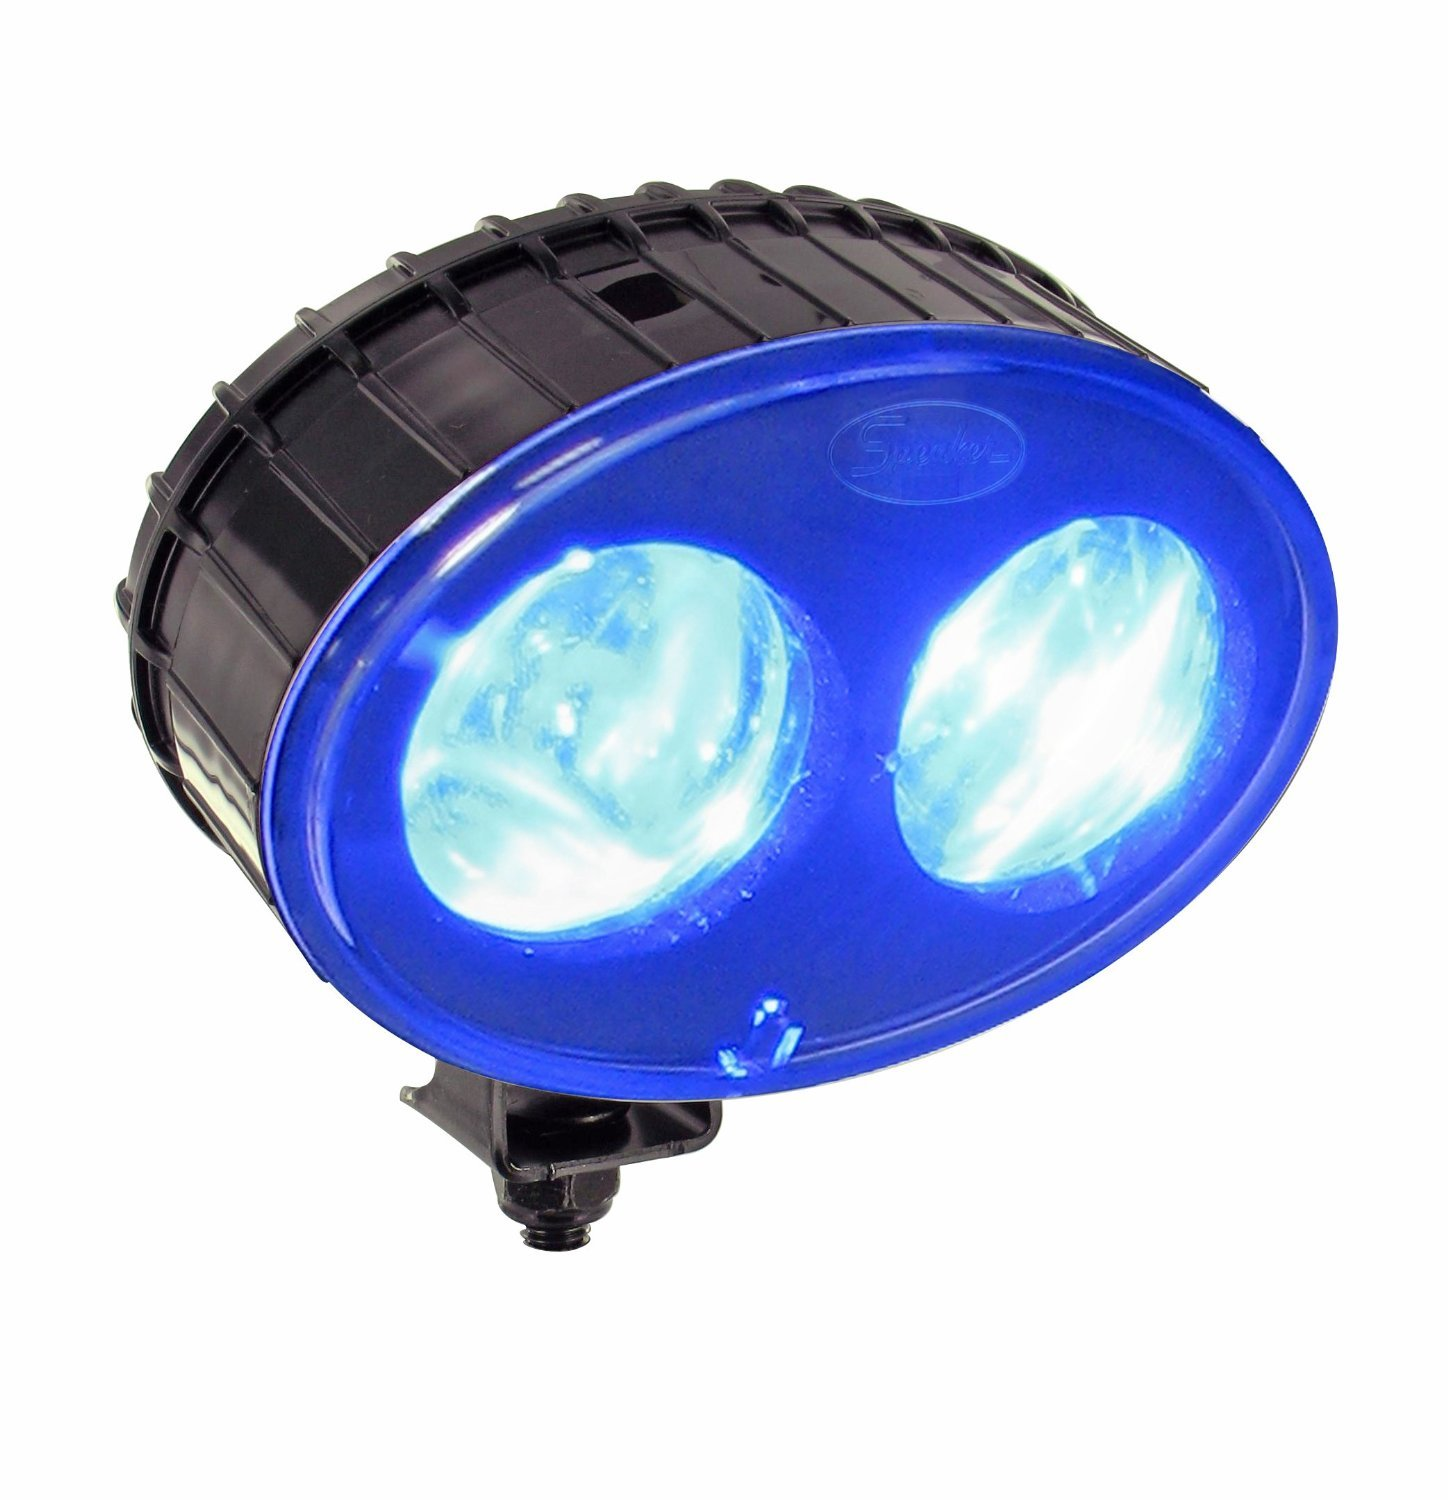 JW Speaker 770BLU Blue Safety Light, 12-48V LED, 9W